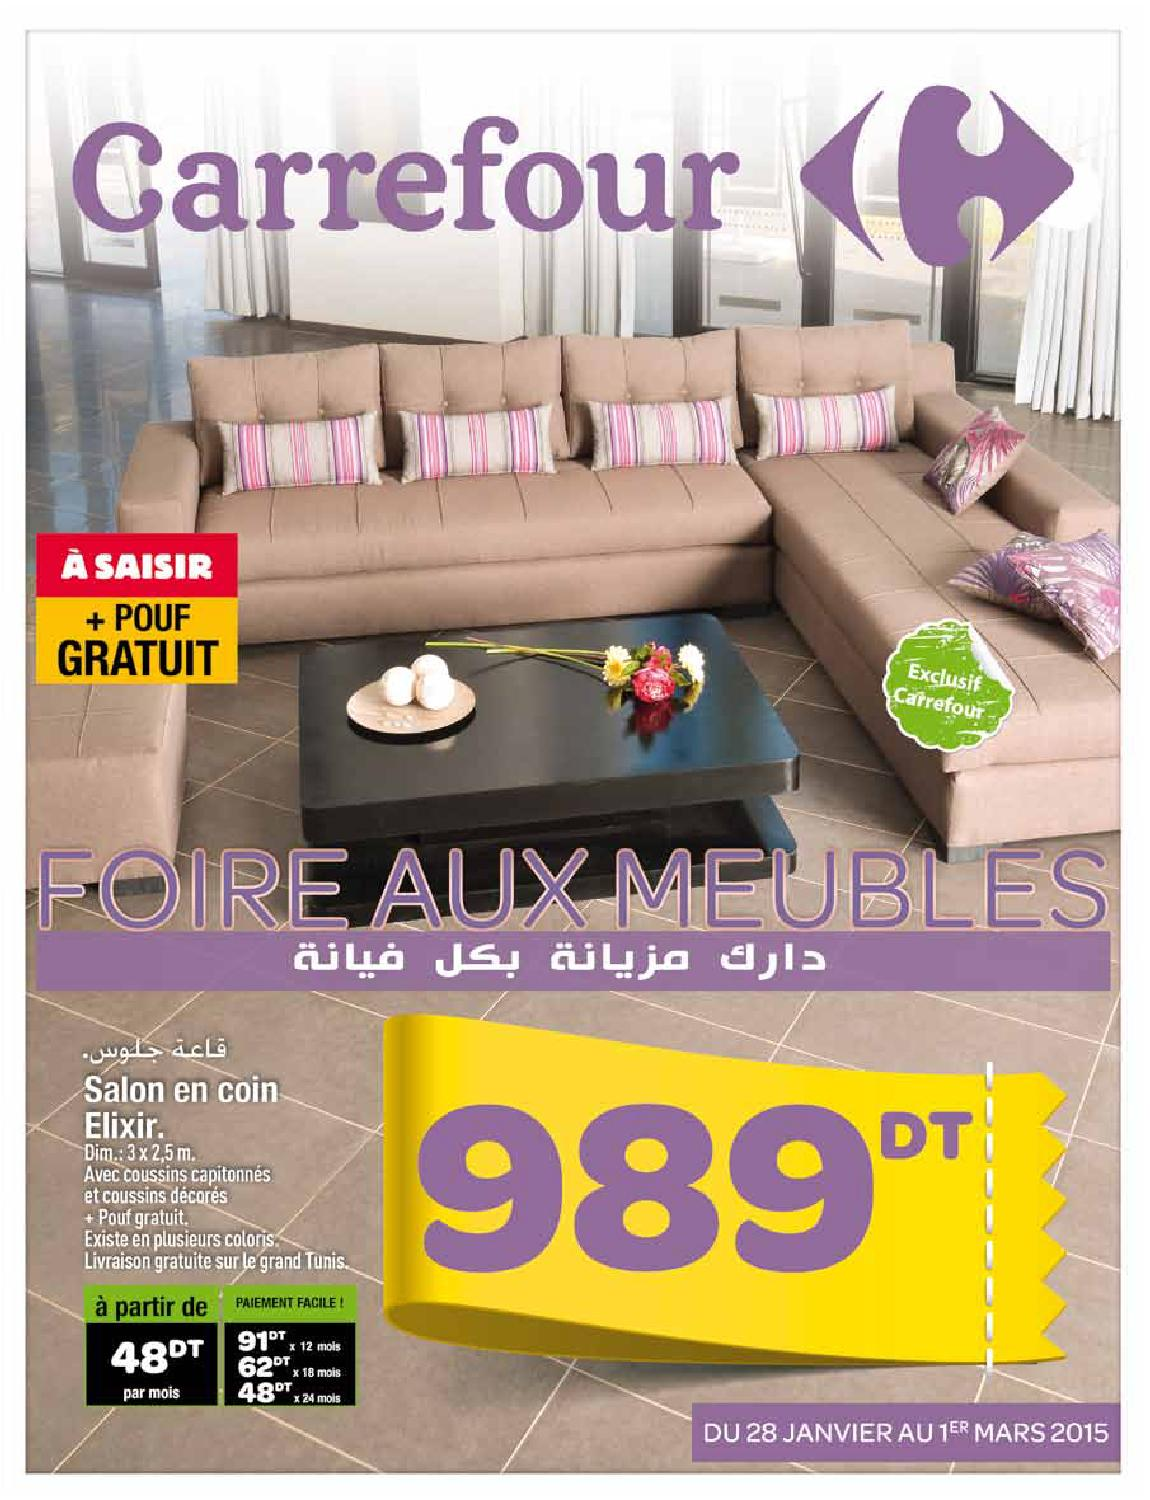 Issuu catalogue carrefour foire aux meubles by for Salon de jardin geant